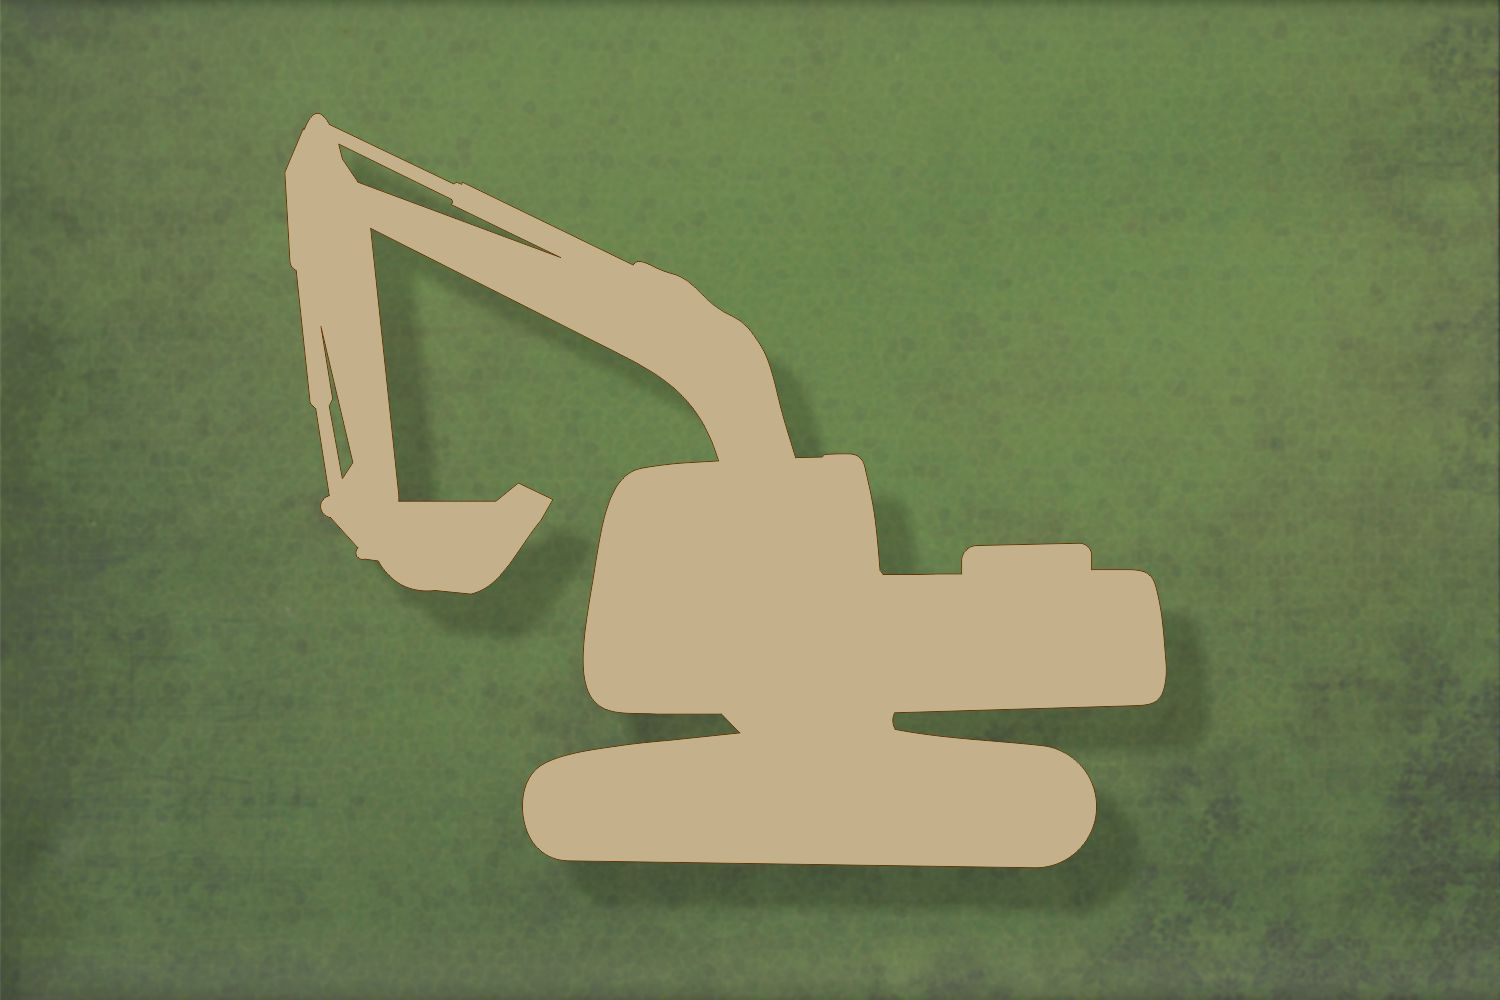 Laser cut, blank wooden Digger 2 shape for craft